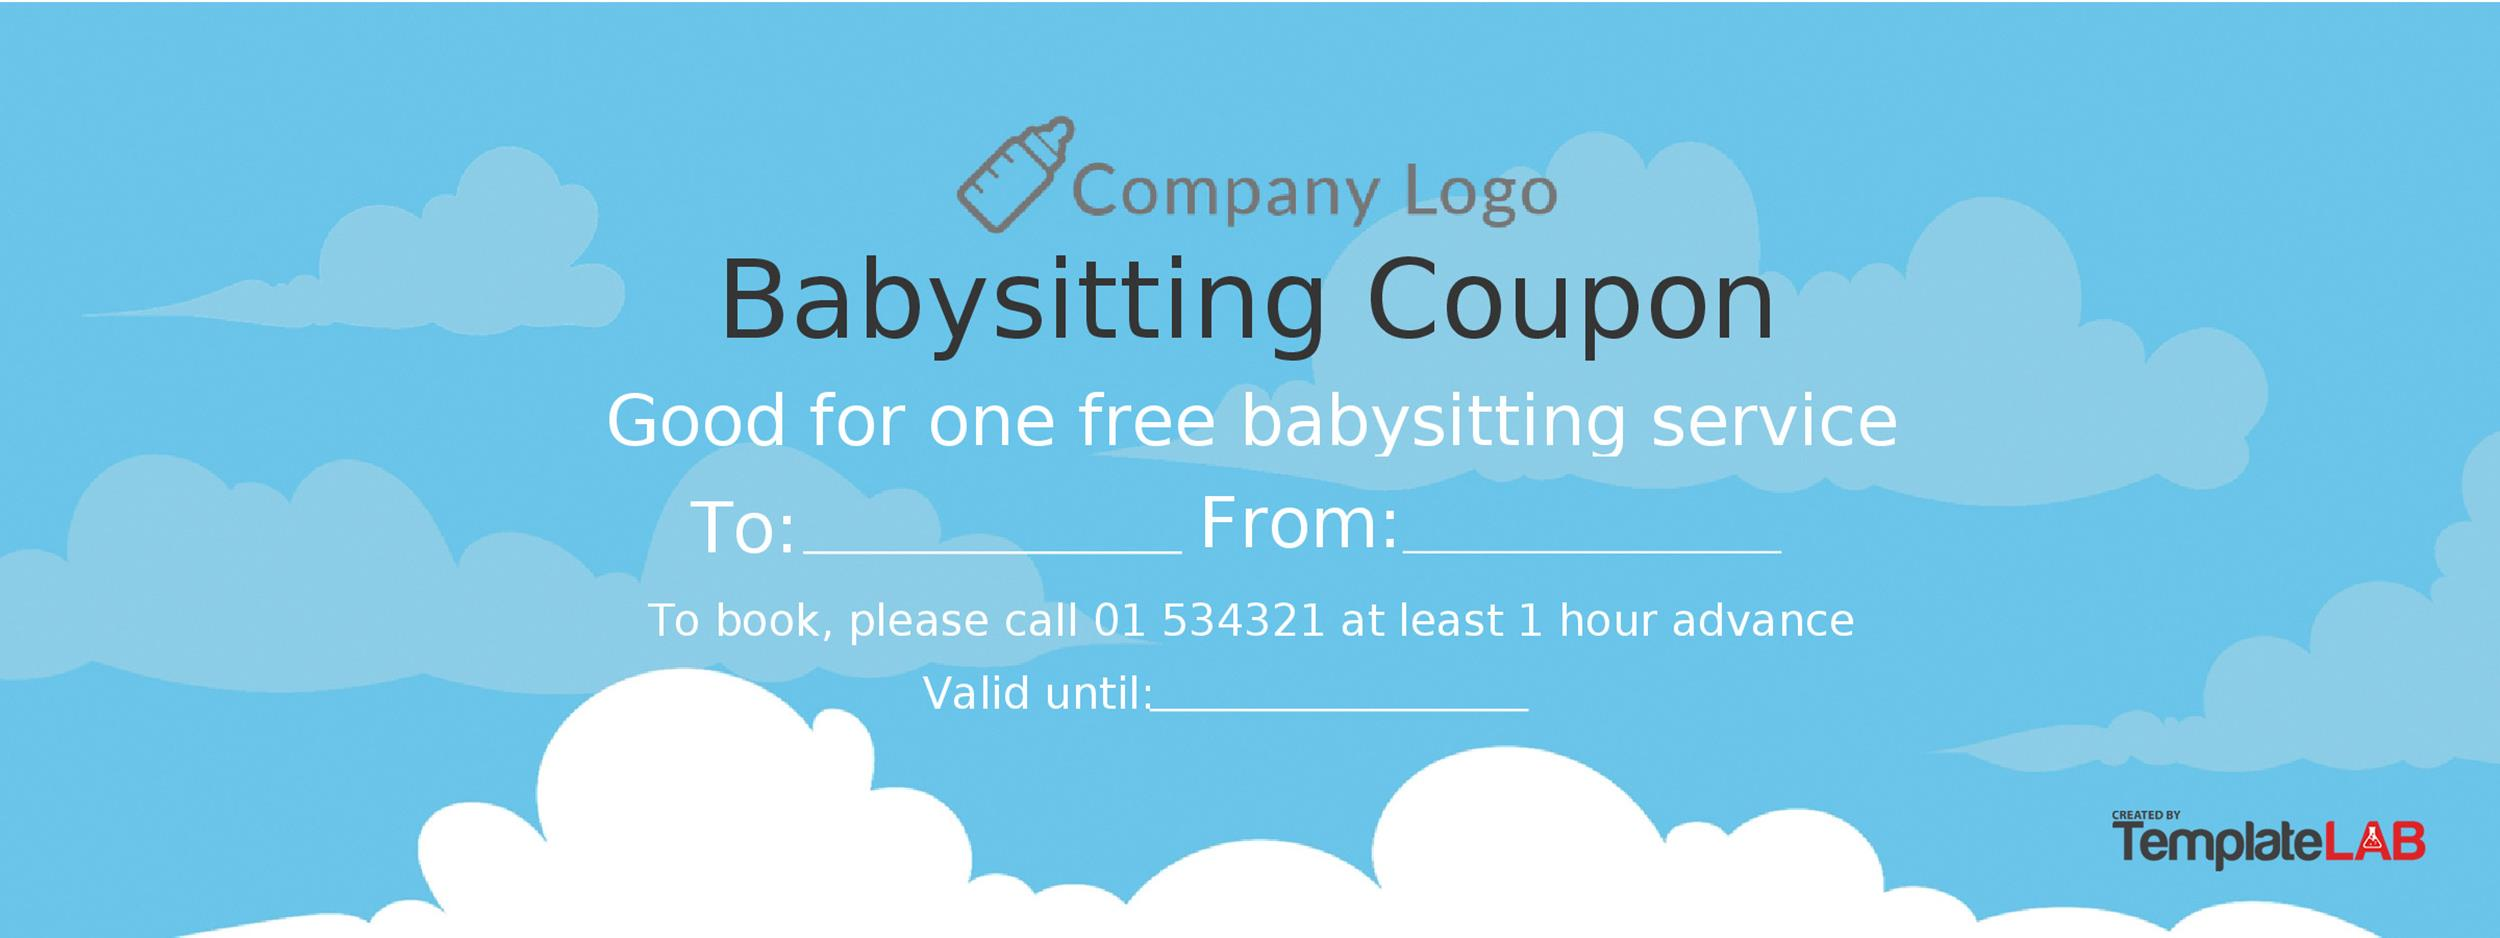 photograph regarding Printable Babysitting Coupon identified as 50 No cost Coupon Templates ᐅ Template Lab